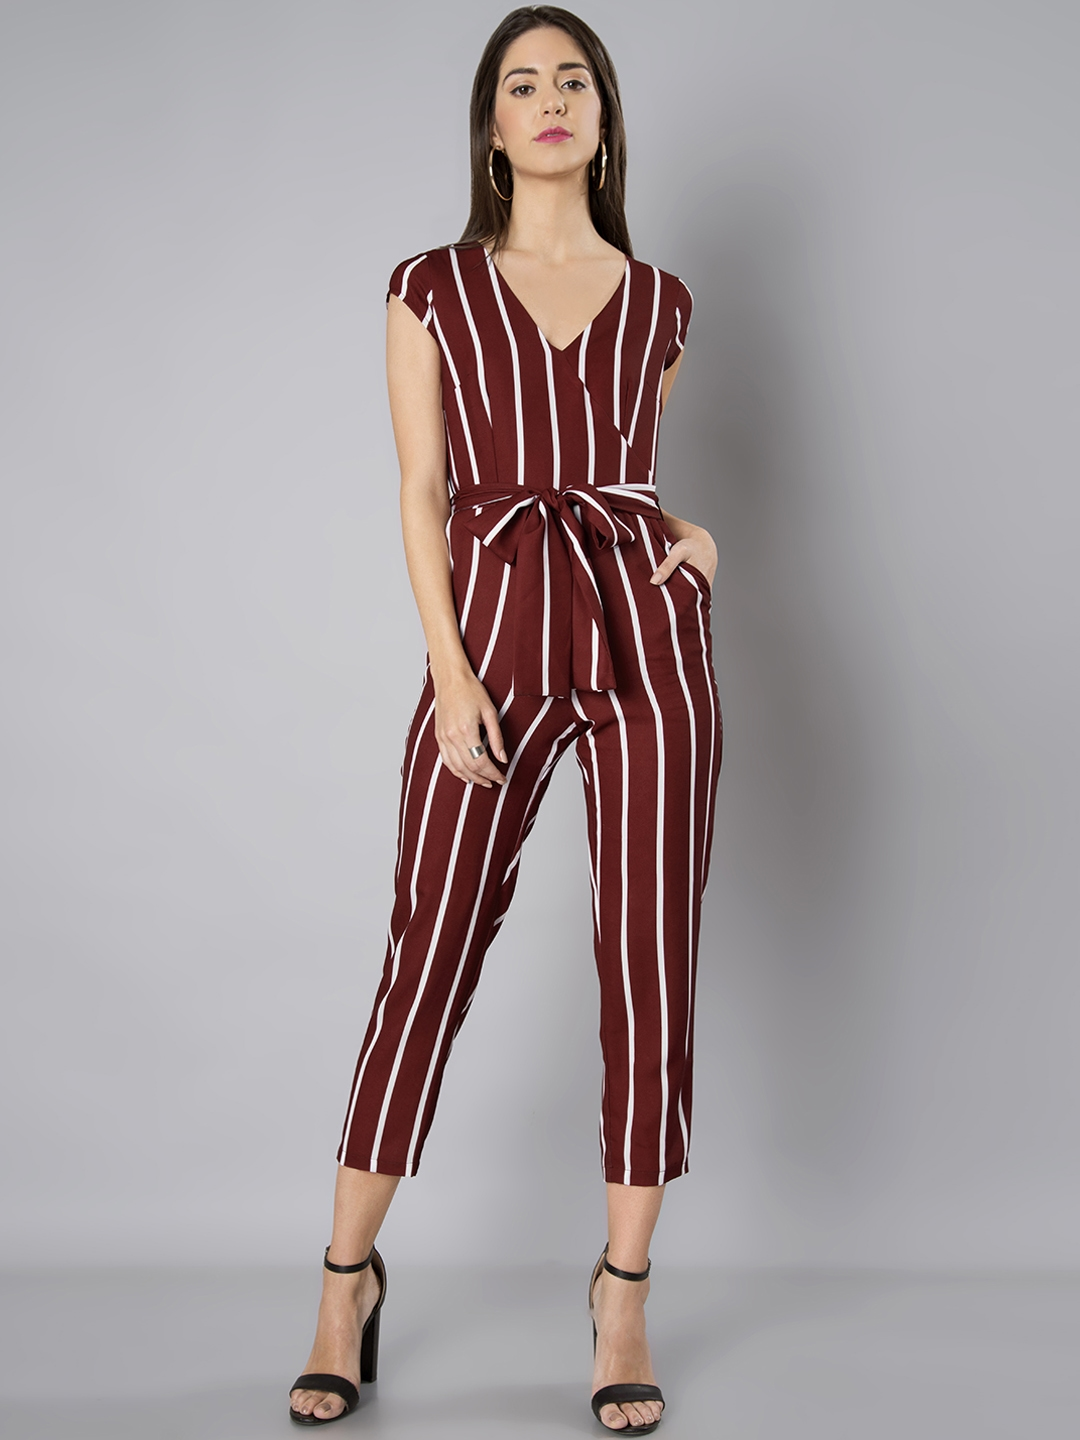 b613c05baf0 Buy FabAlley Maroon   White Striped Basic Jumpsuit - Jumpsuit for ...